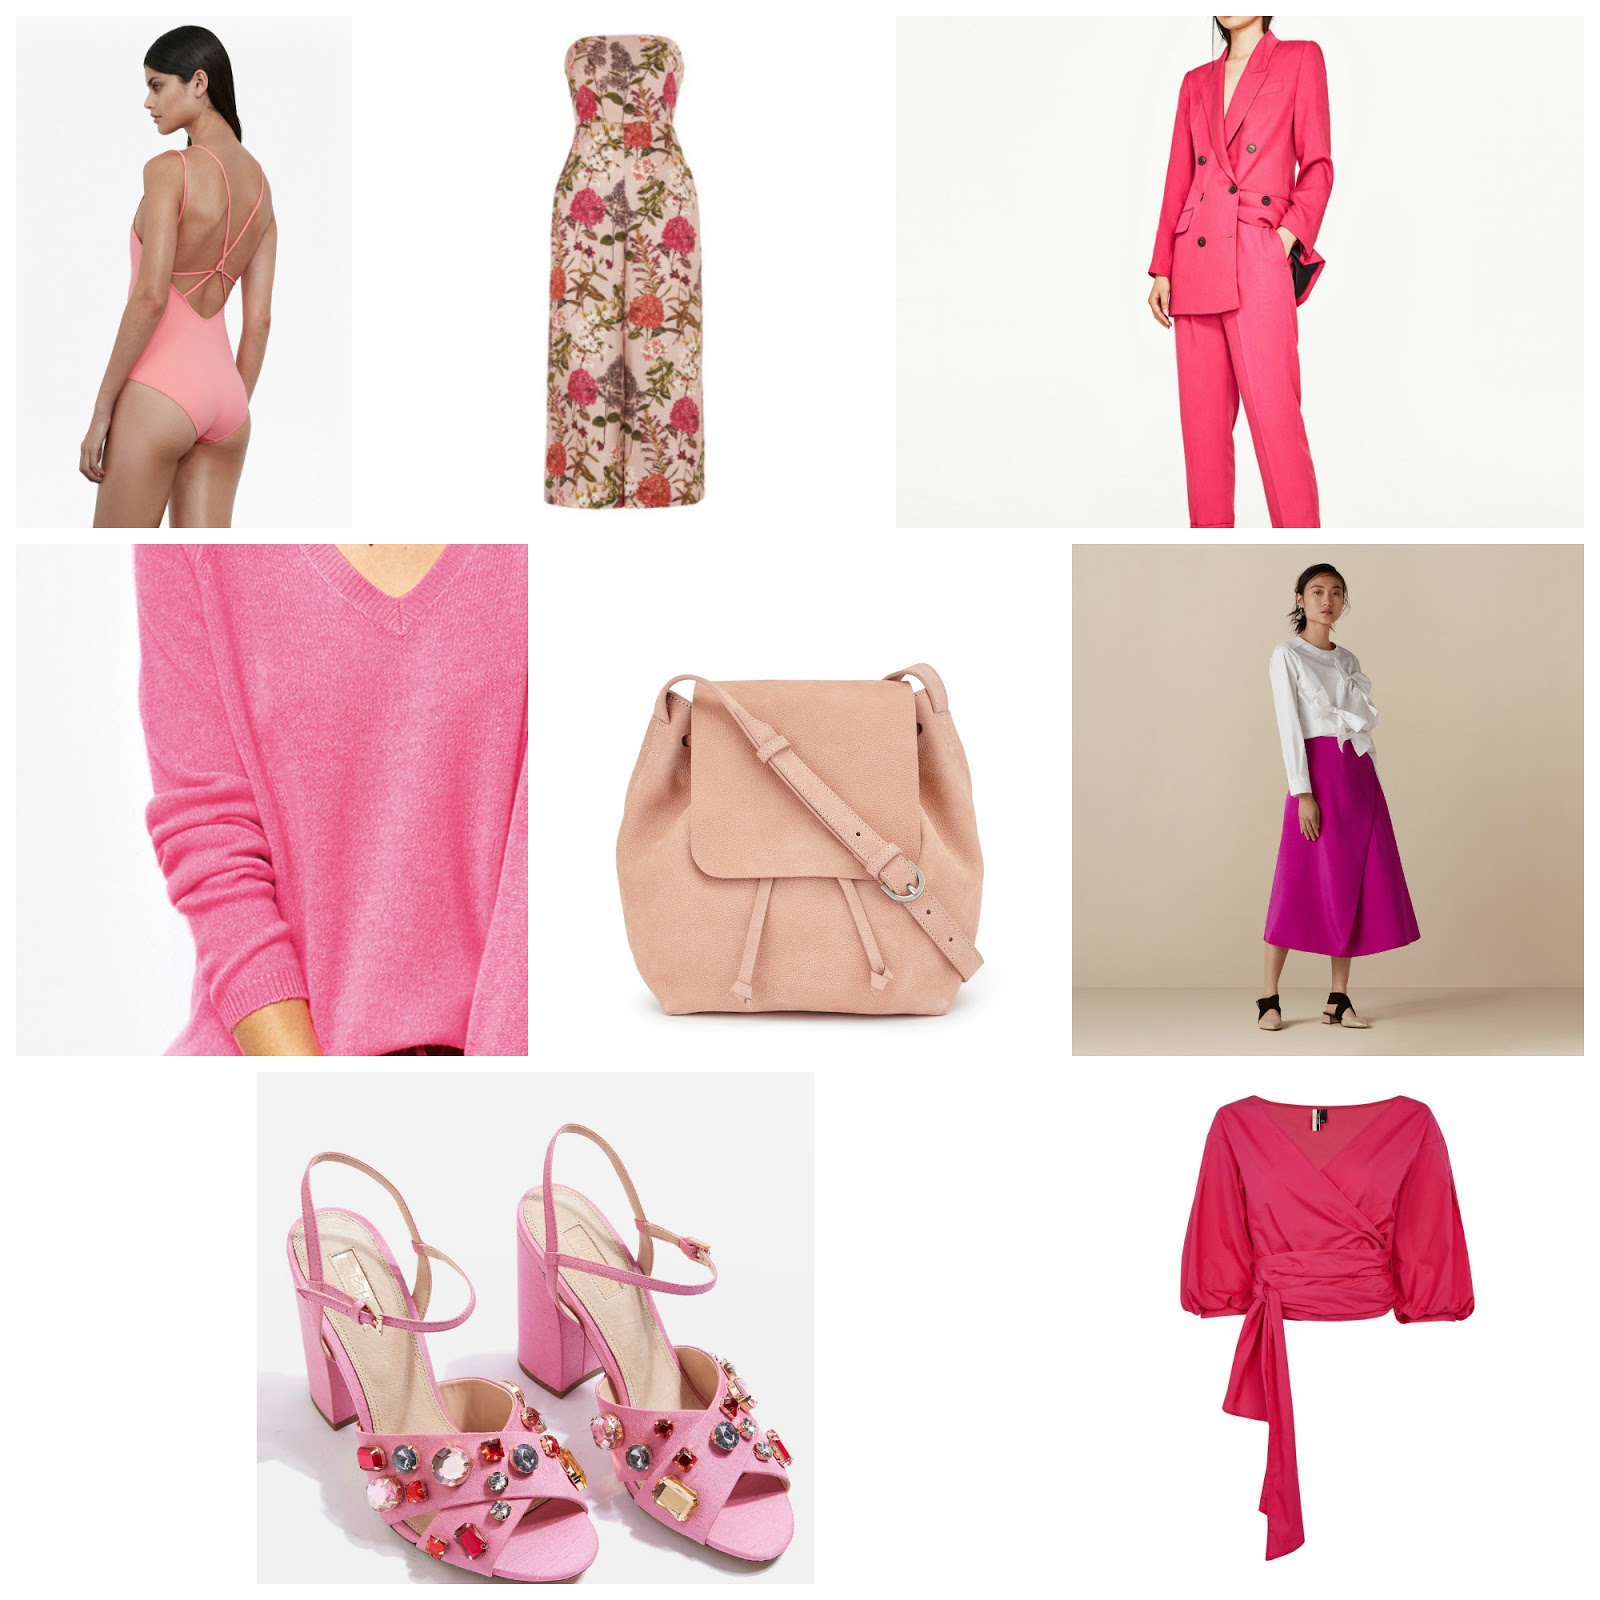 The Weekly Edit: Pretty in Pink by Laura Lewis